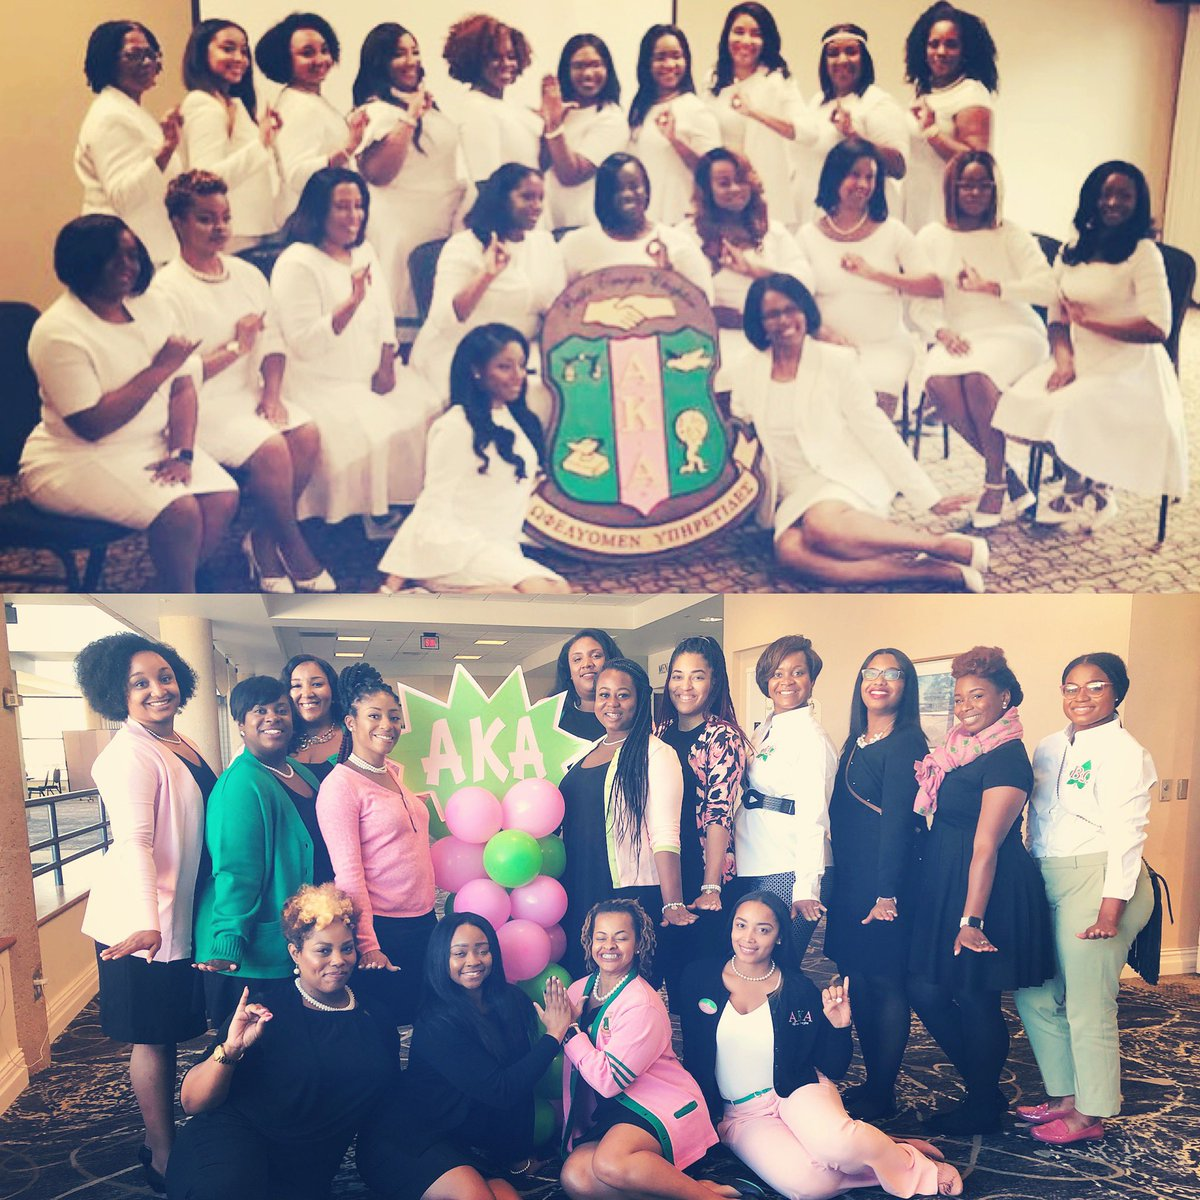 test Twitter Media - #HappyMothersDay to the illustrious women of Alpha Kappa Alpha Sorority Incorporated!! #servicetoallmankind #AKA111 #AKAFoundersDay 💗💚 https://t.co/D1njegGmv4